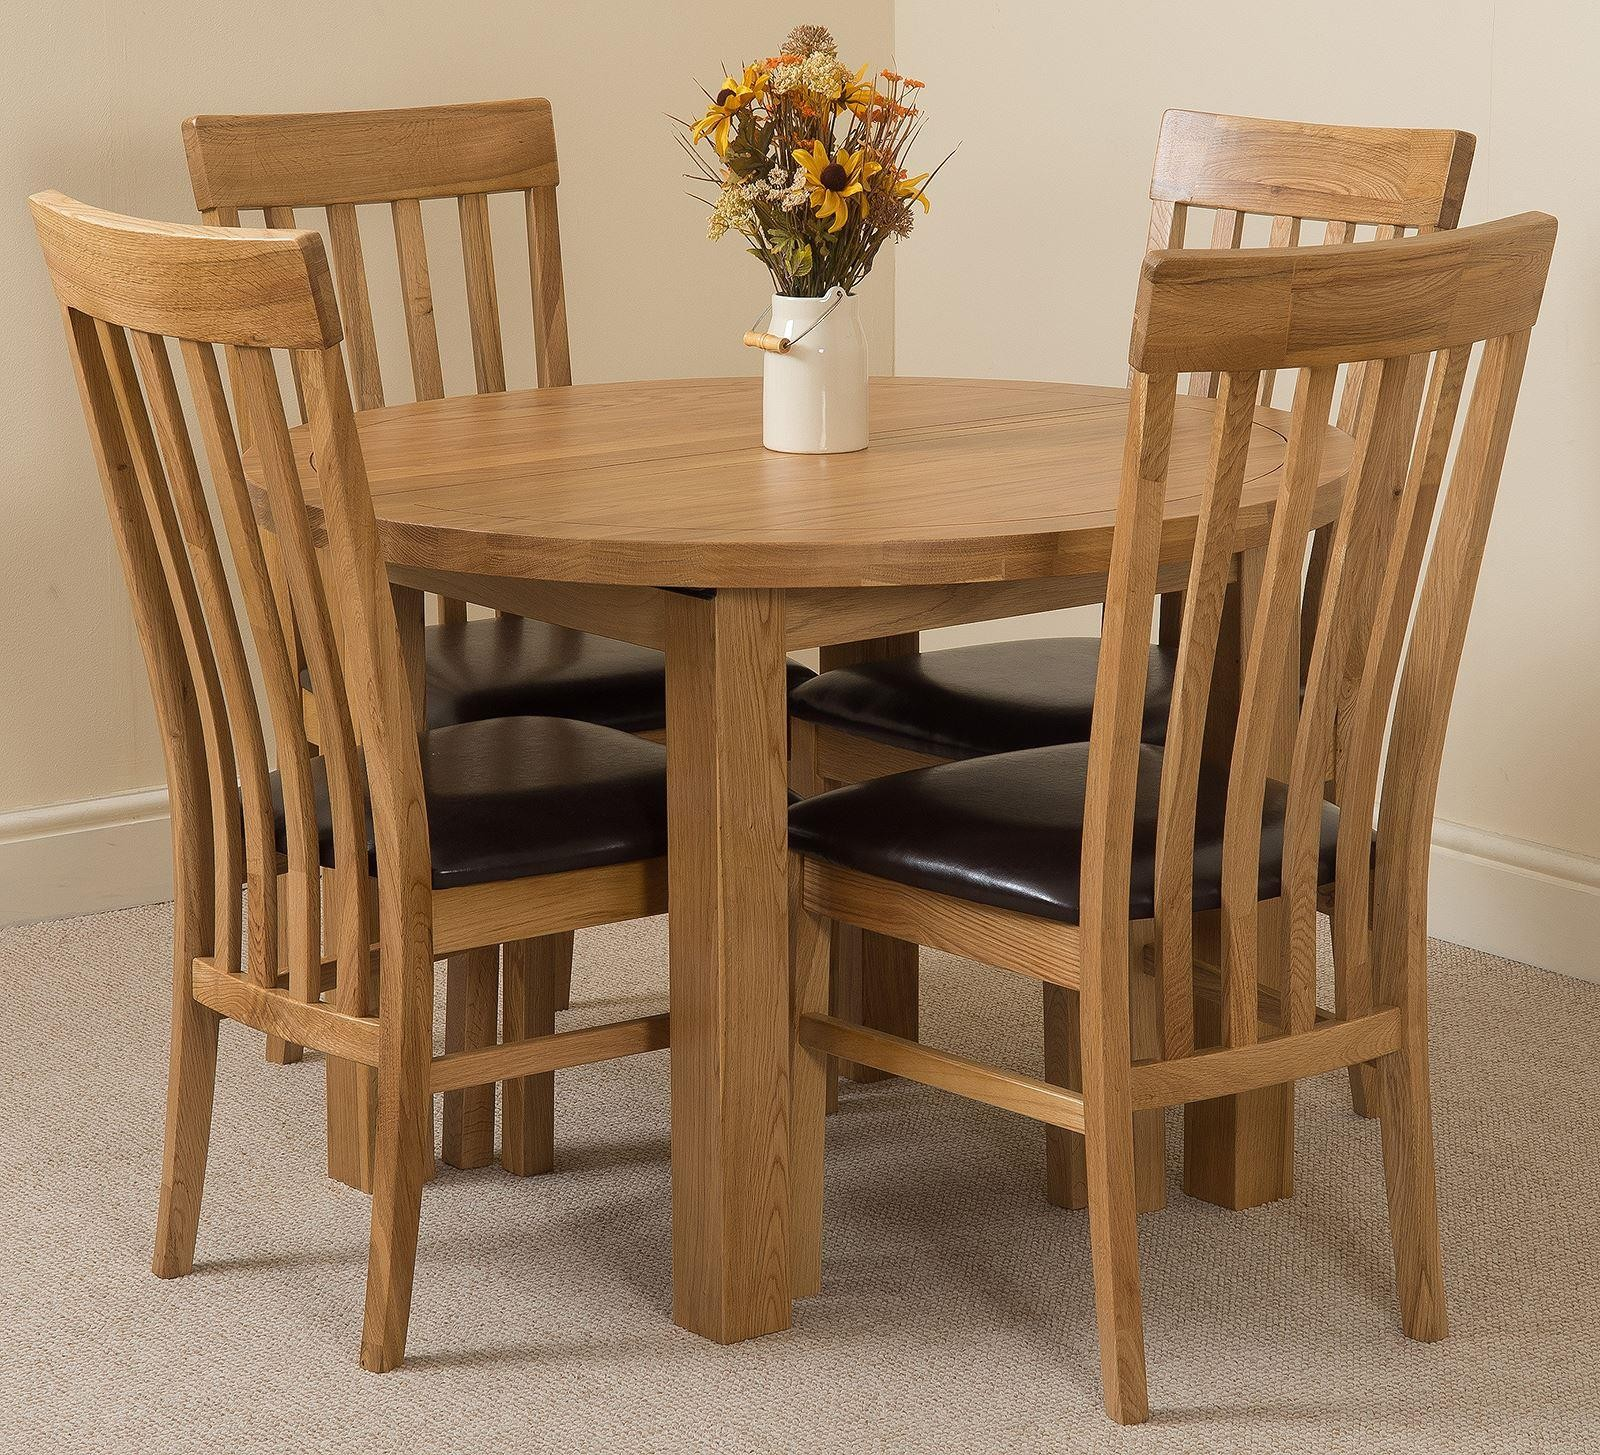 Edmonton Solid Oak Extending Oval Dining Table With 4 Harvard Solid Oak Dining Chairs [Light Oak and Brown Leather]